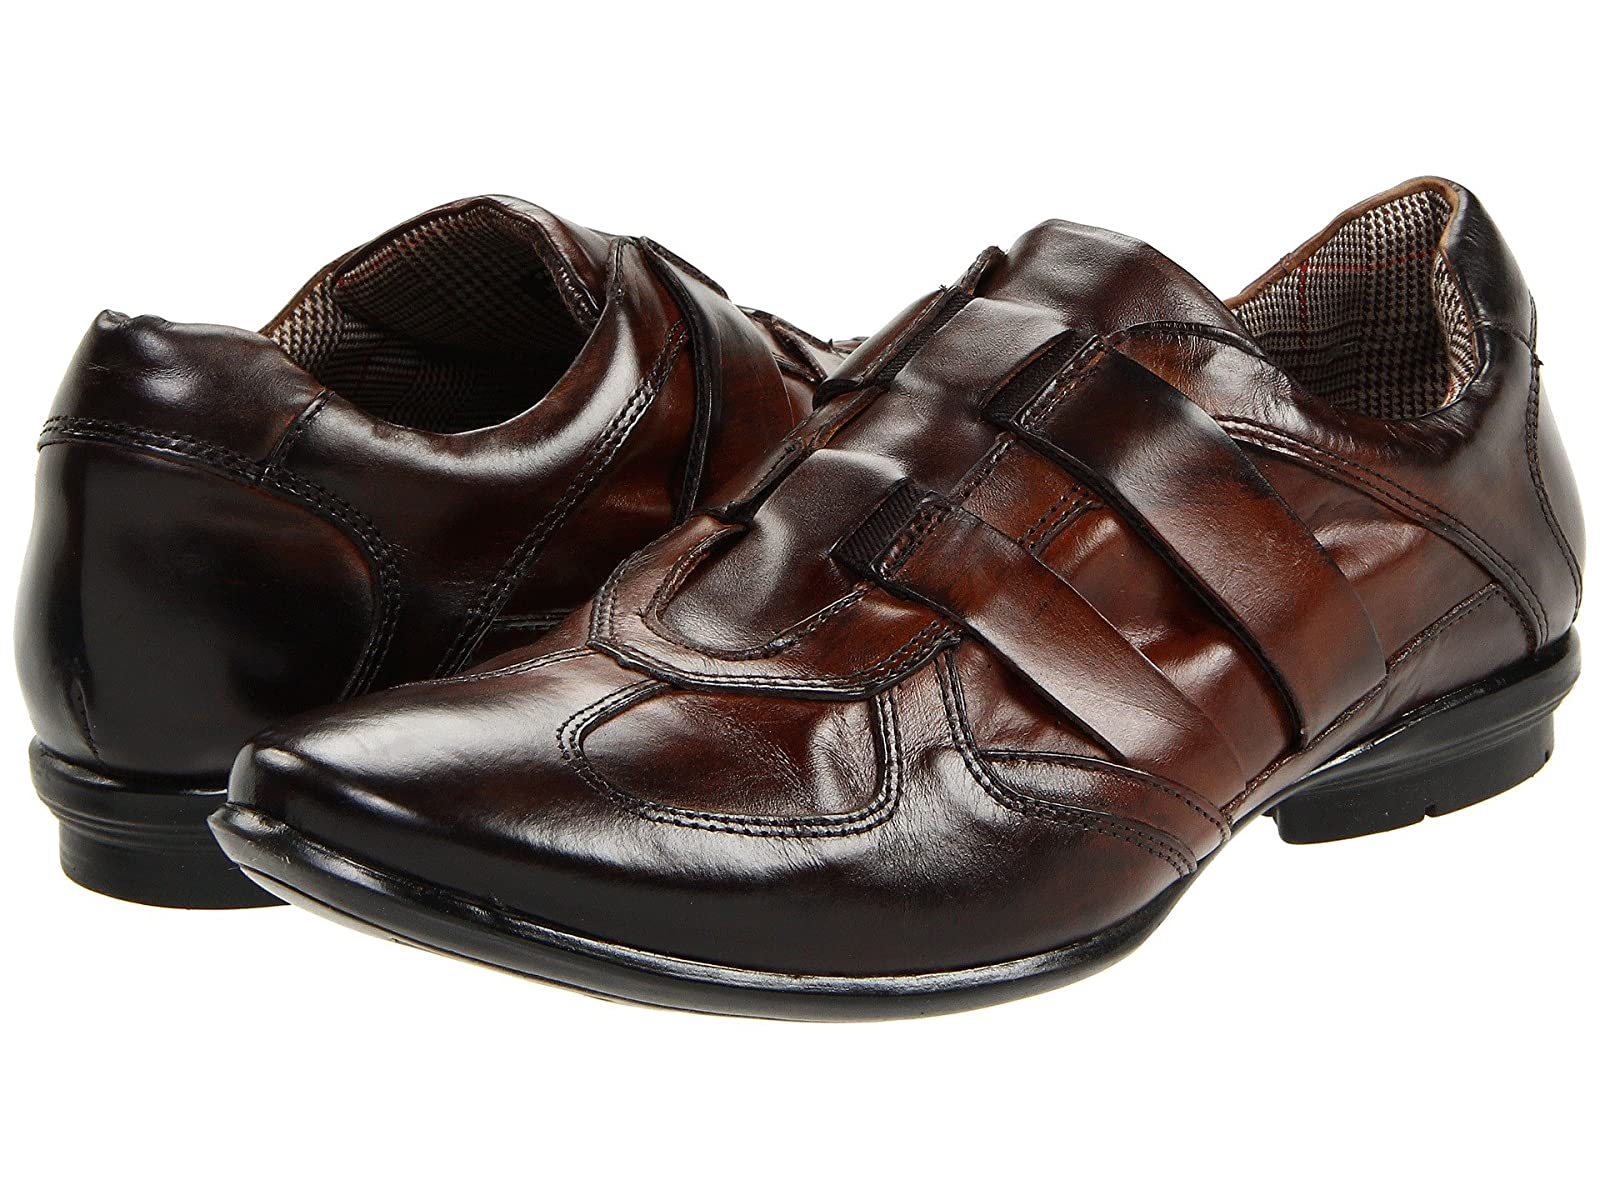 Bacco Bucci FaustoAtmospheric grades have affordable shoes